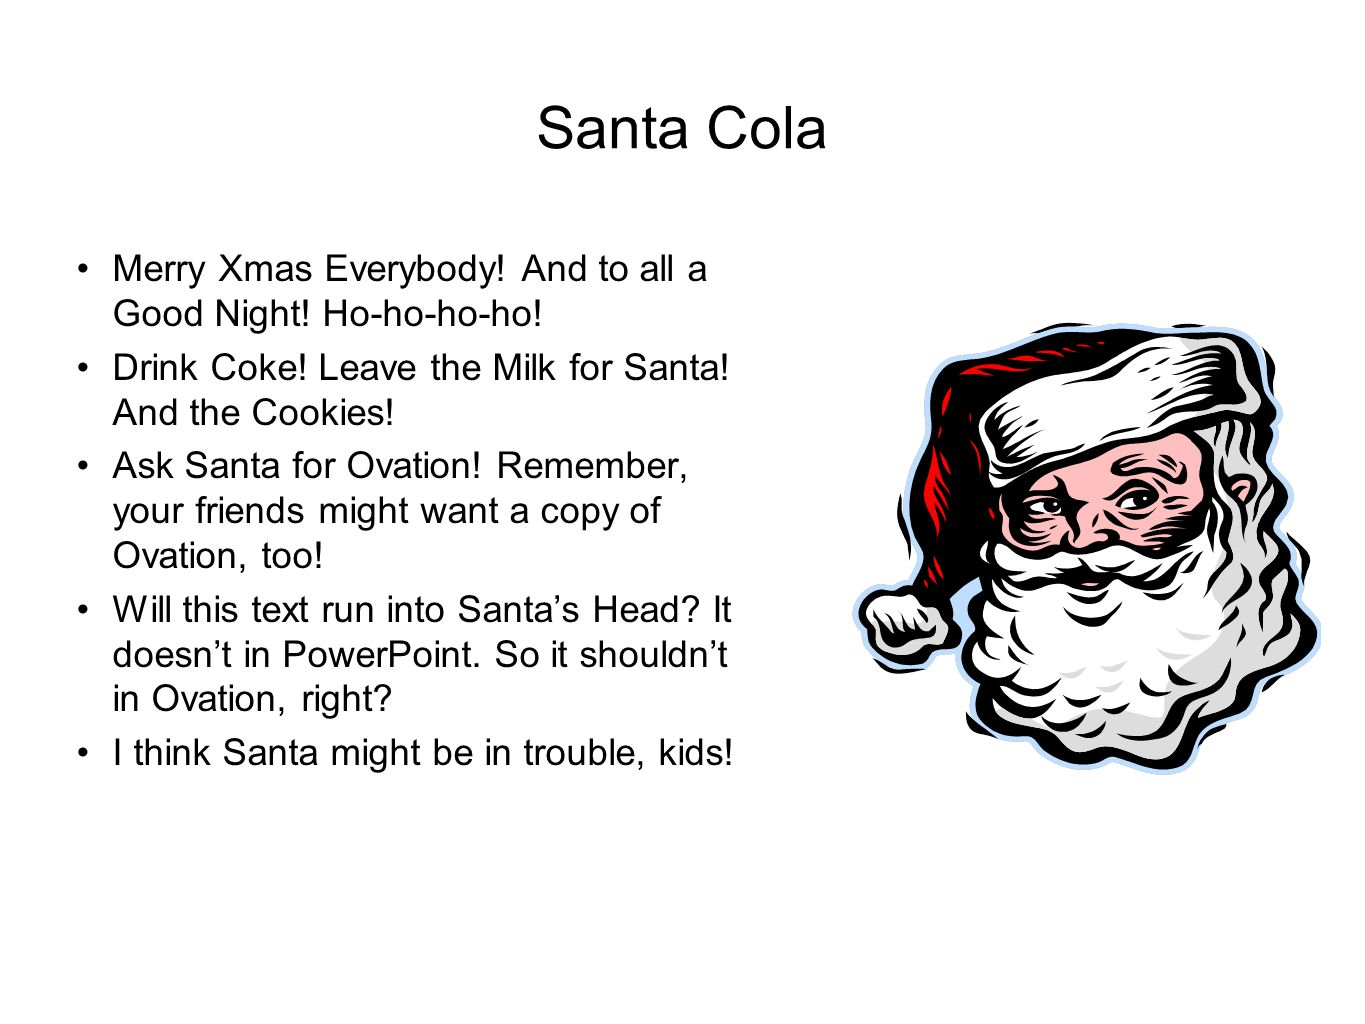 Santa Cola Merry Xmas Everybody! And to all a Good Night! Ho-ho-ho-ho! Drink Coke! Leave the Milk for Santa! And the Cookies! Ask Santa for Ovation! R